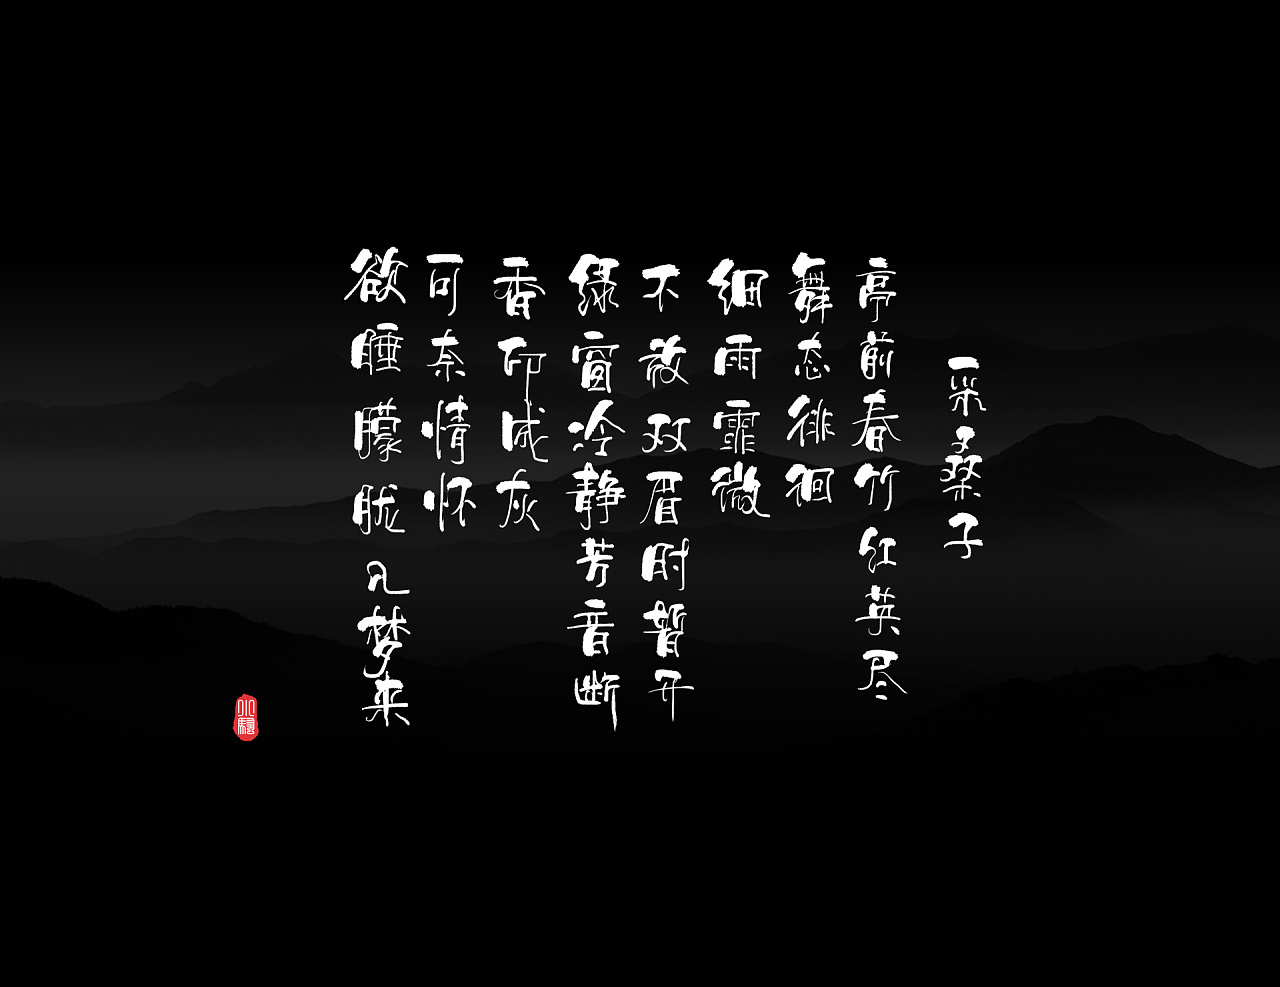 chinesefontdesign.com 2018 02 04 12 38 01 055416 50P Li Sao of Tang Song style Chinese Design Inspiration